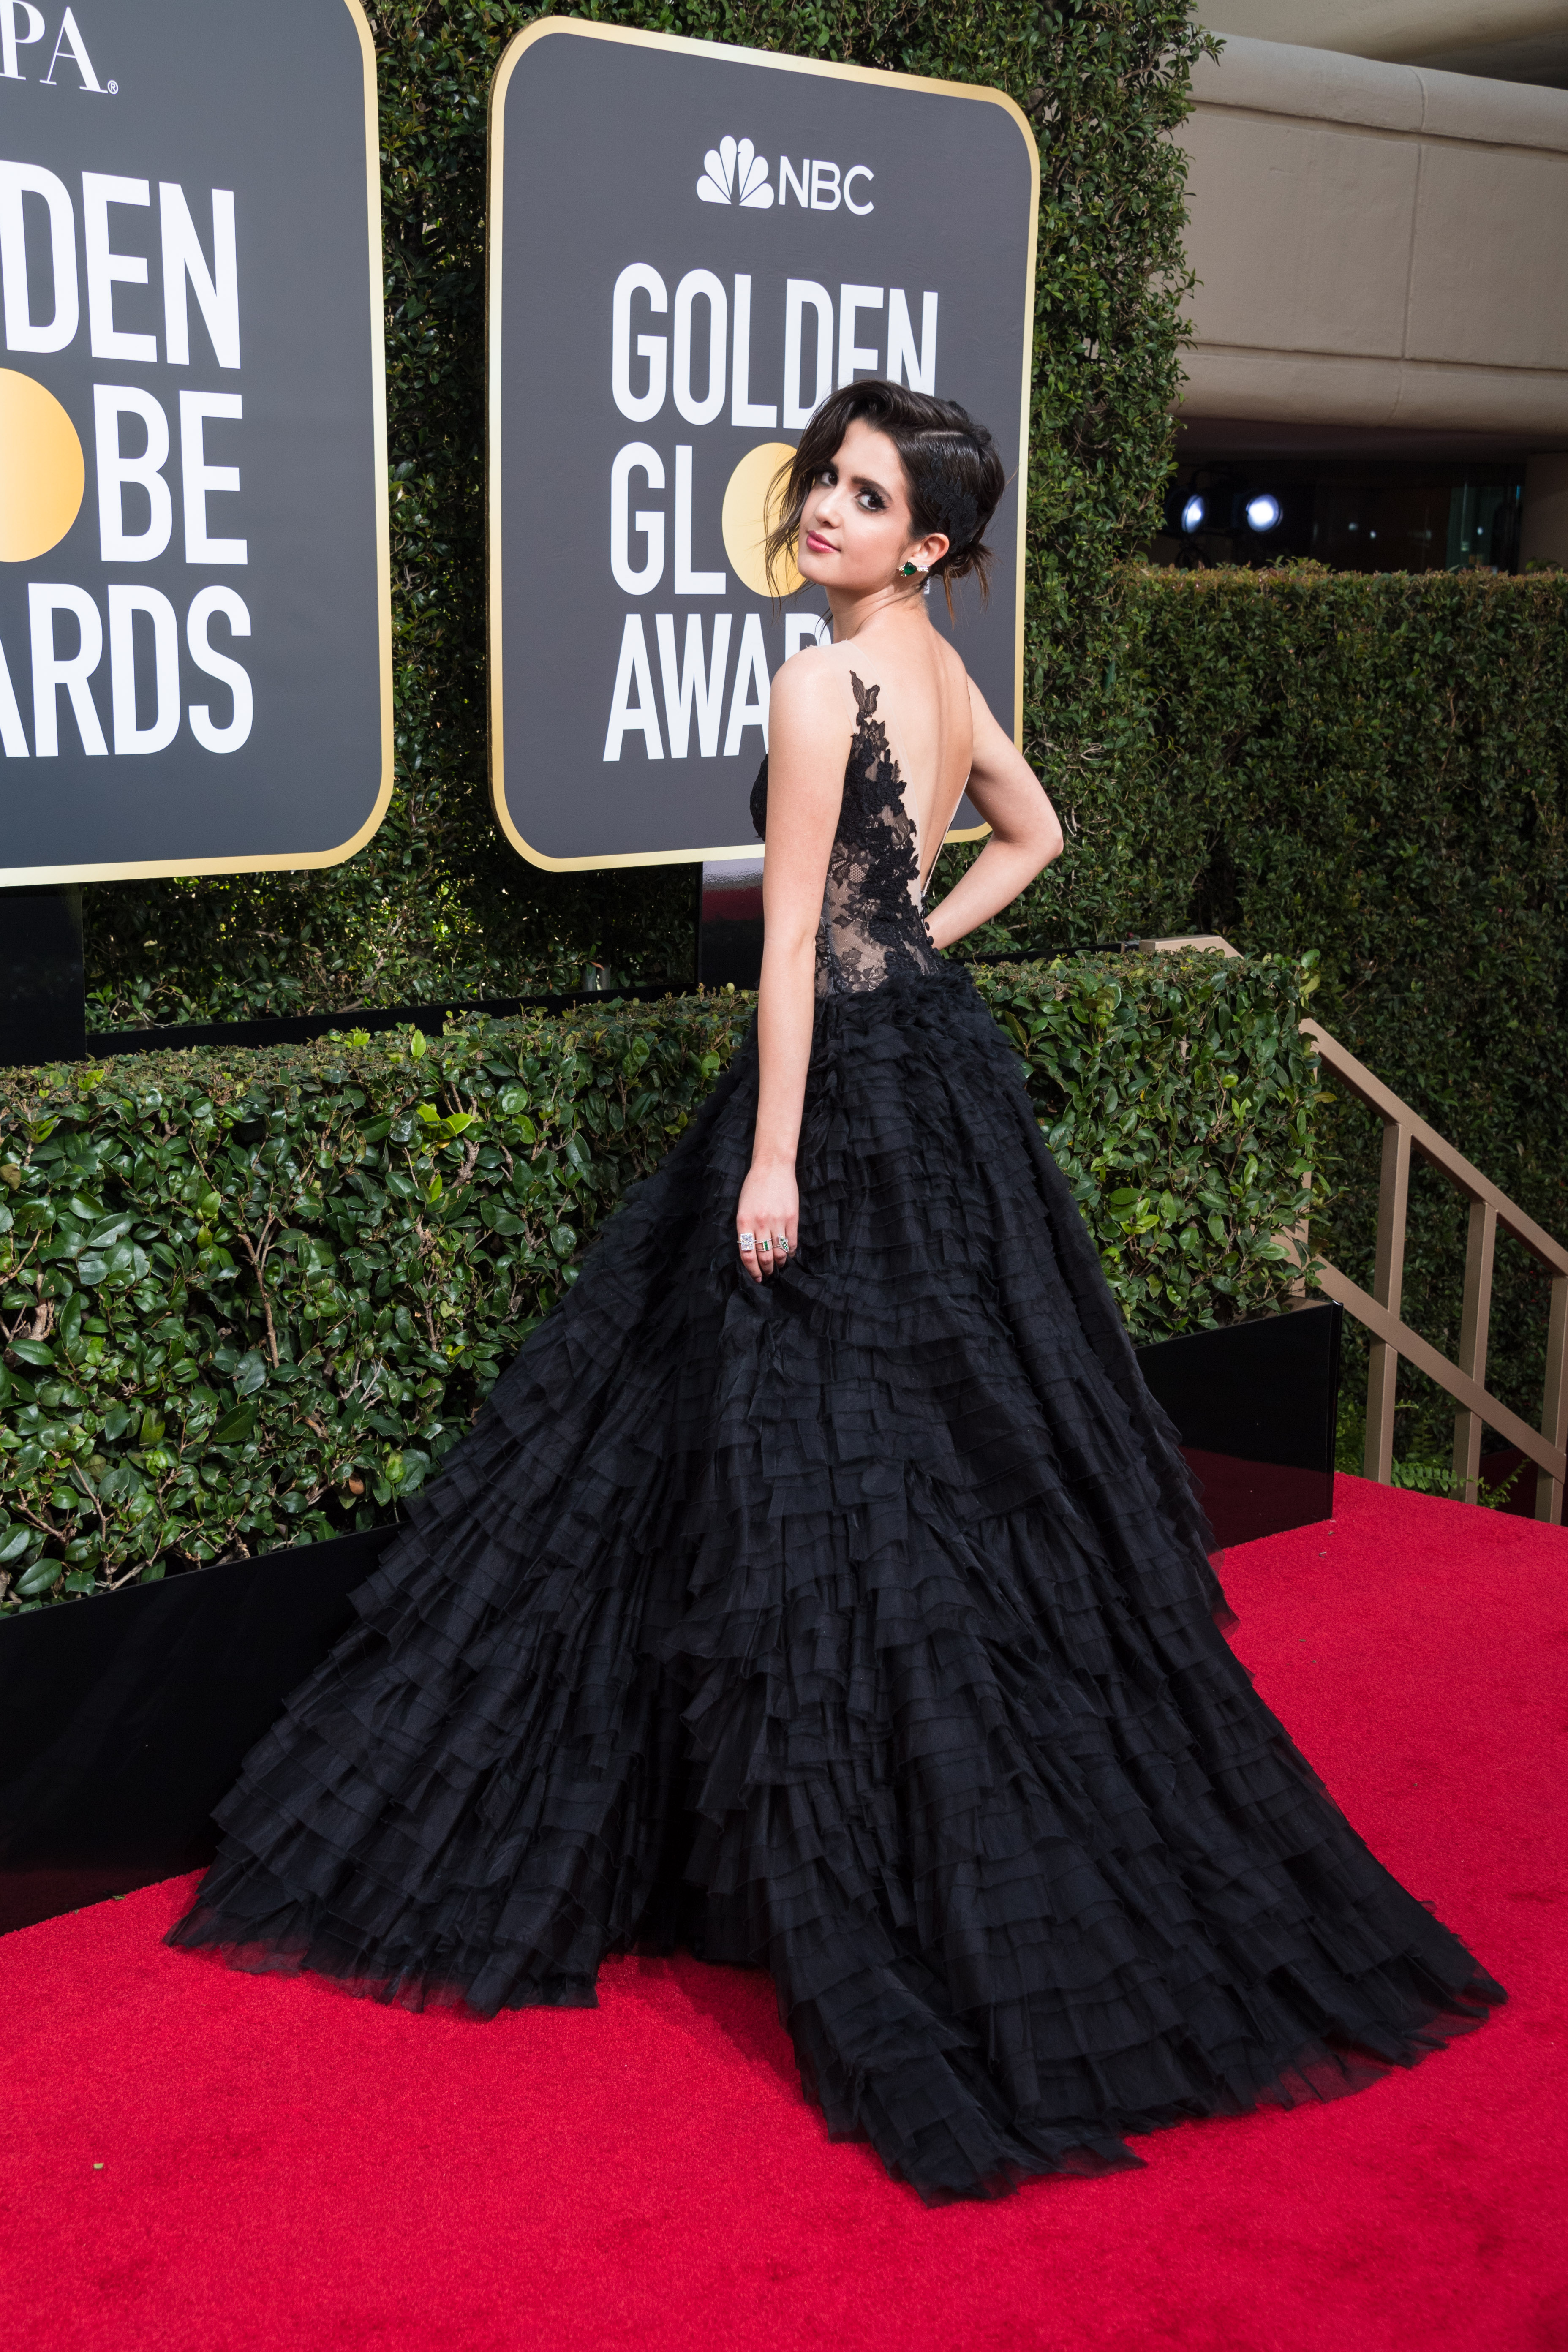 Laura Marano arrives at the 75th Annual Golden Globe Awards at the Beverly Hilton in Beverly Hills, CA on Sunday, January 7, 2018.